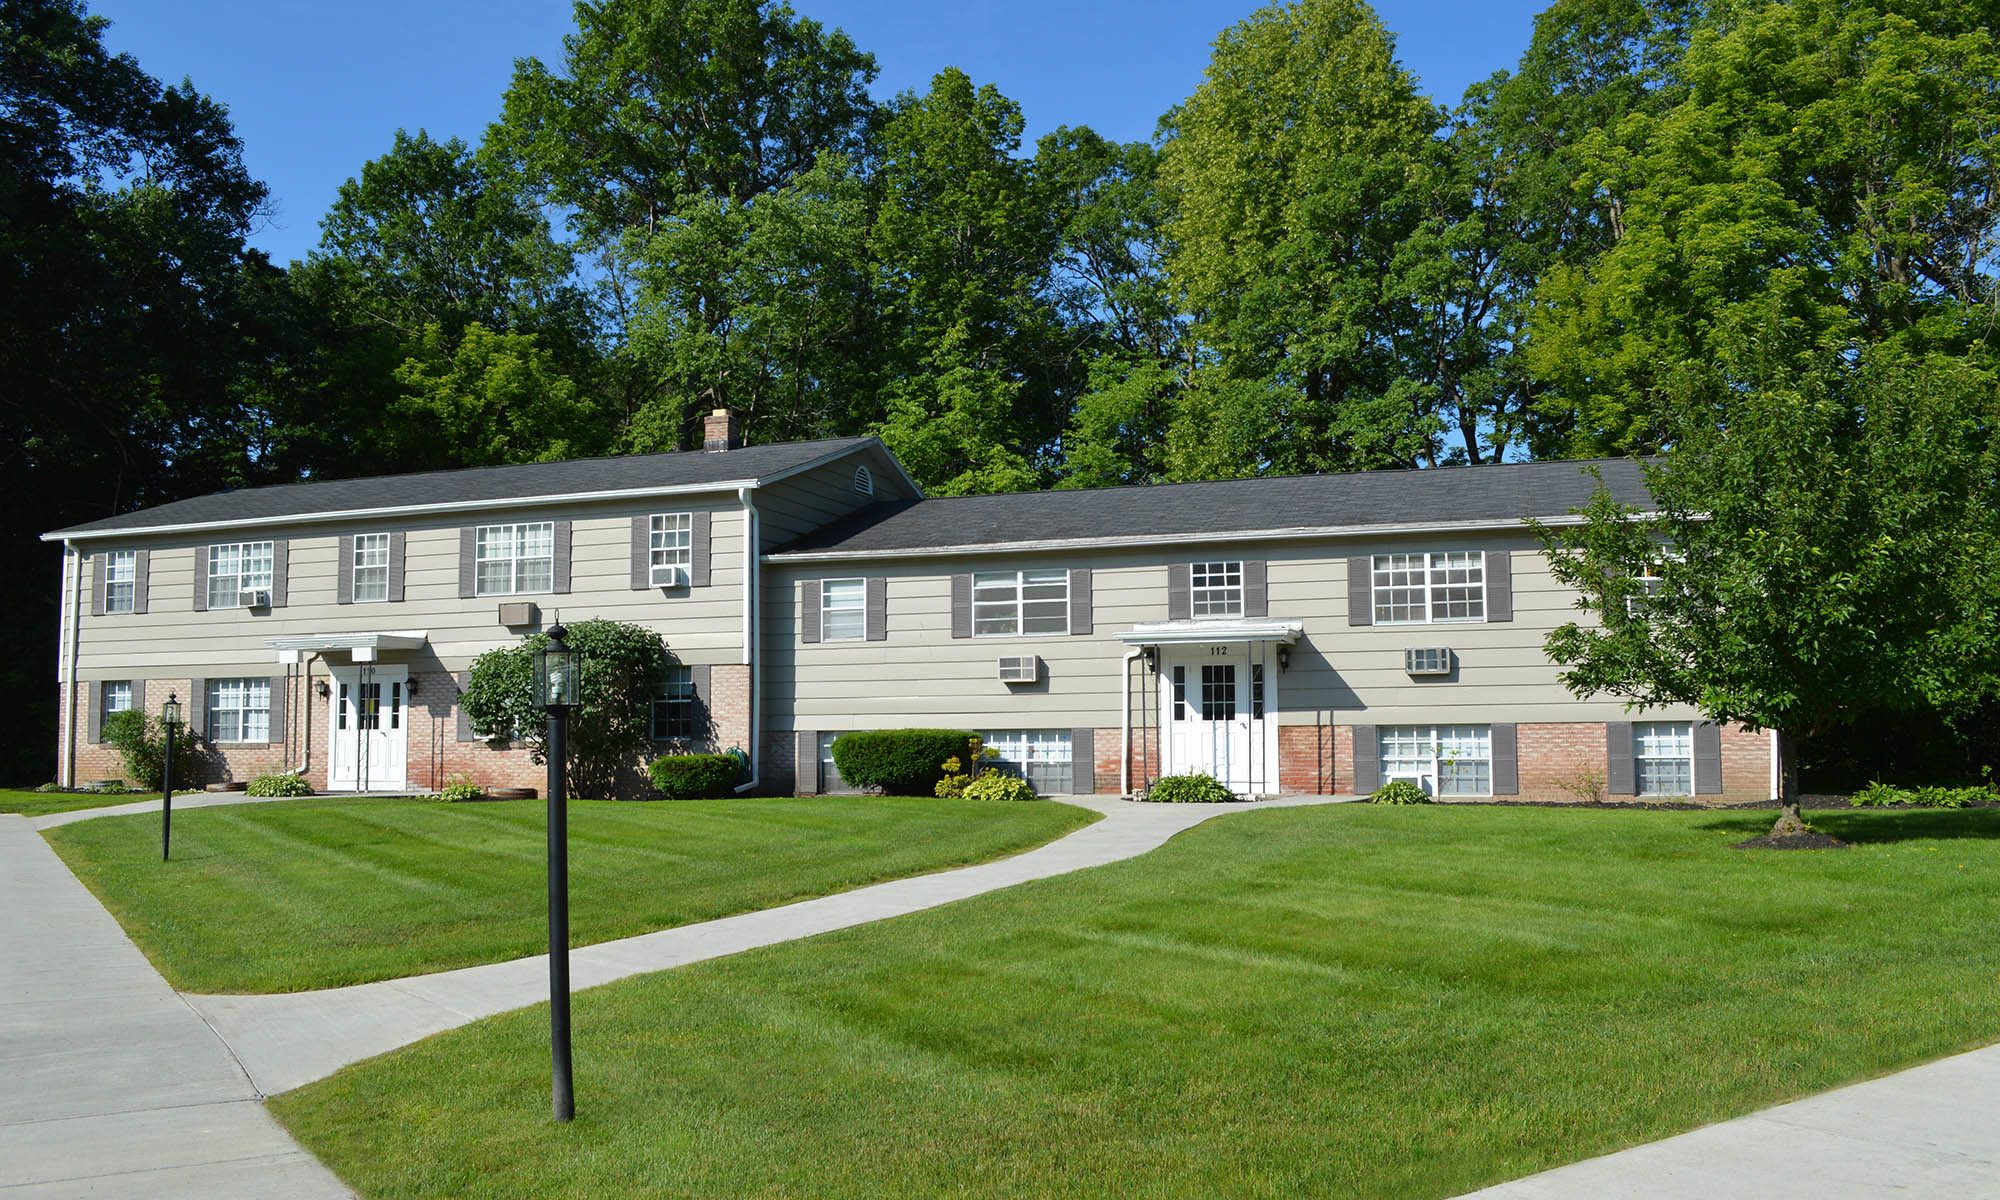 Apartments in Penfield, New York